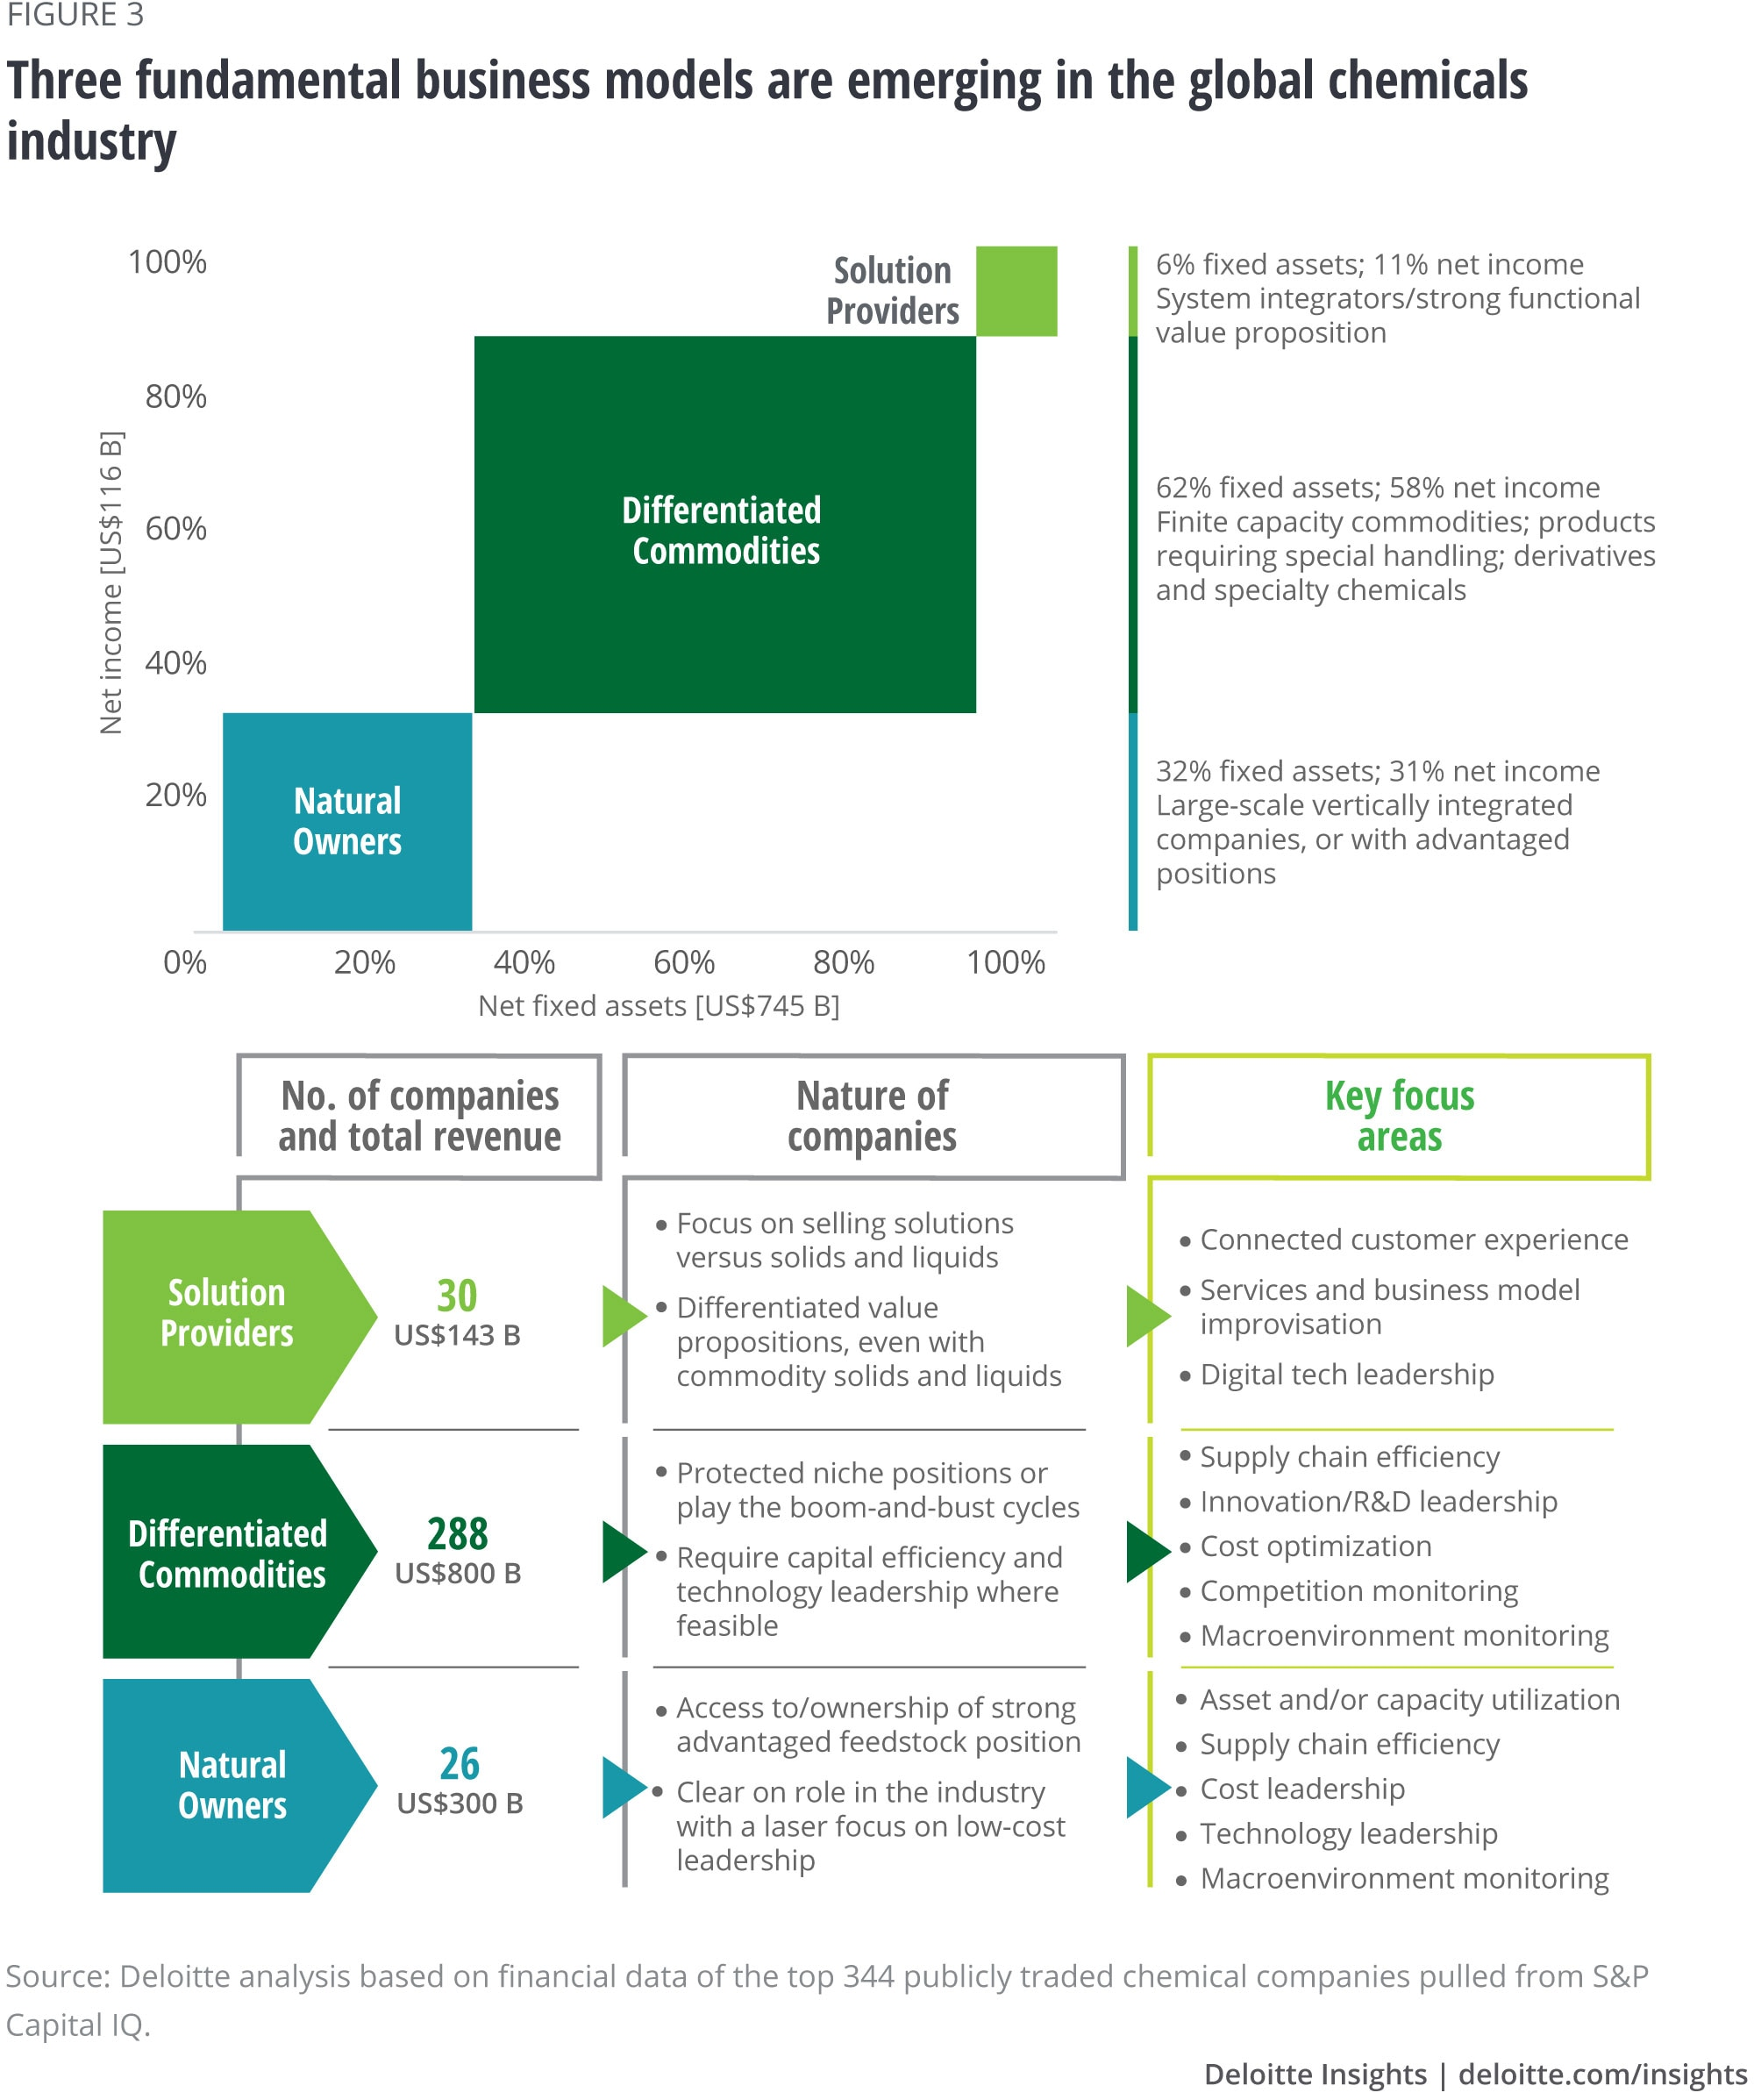 Strategic imperatives for chemicals companies | Deloitte